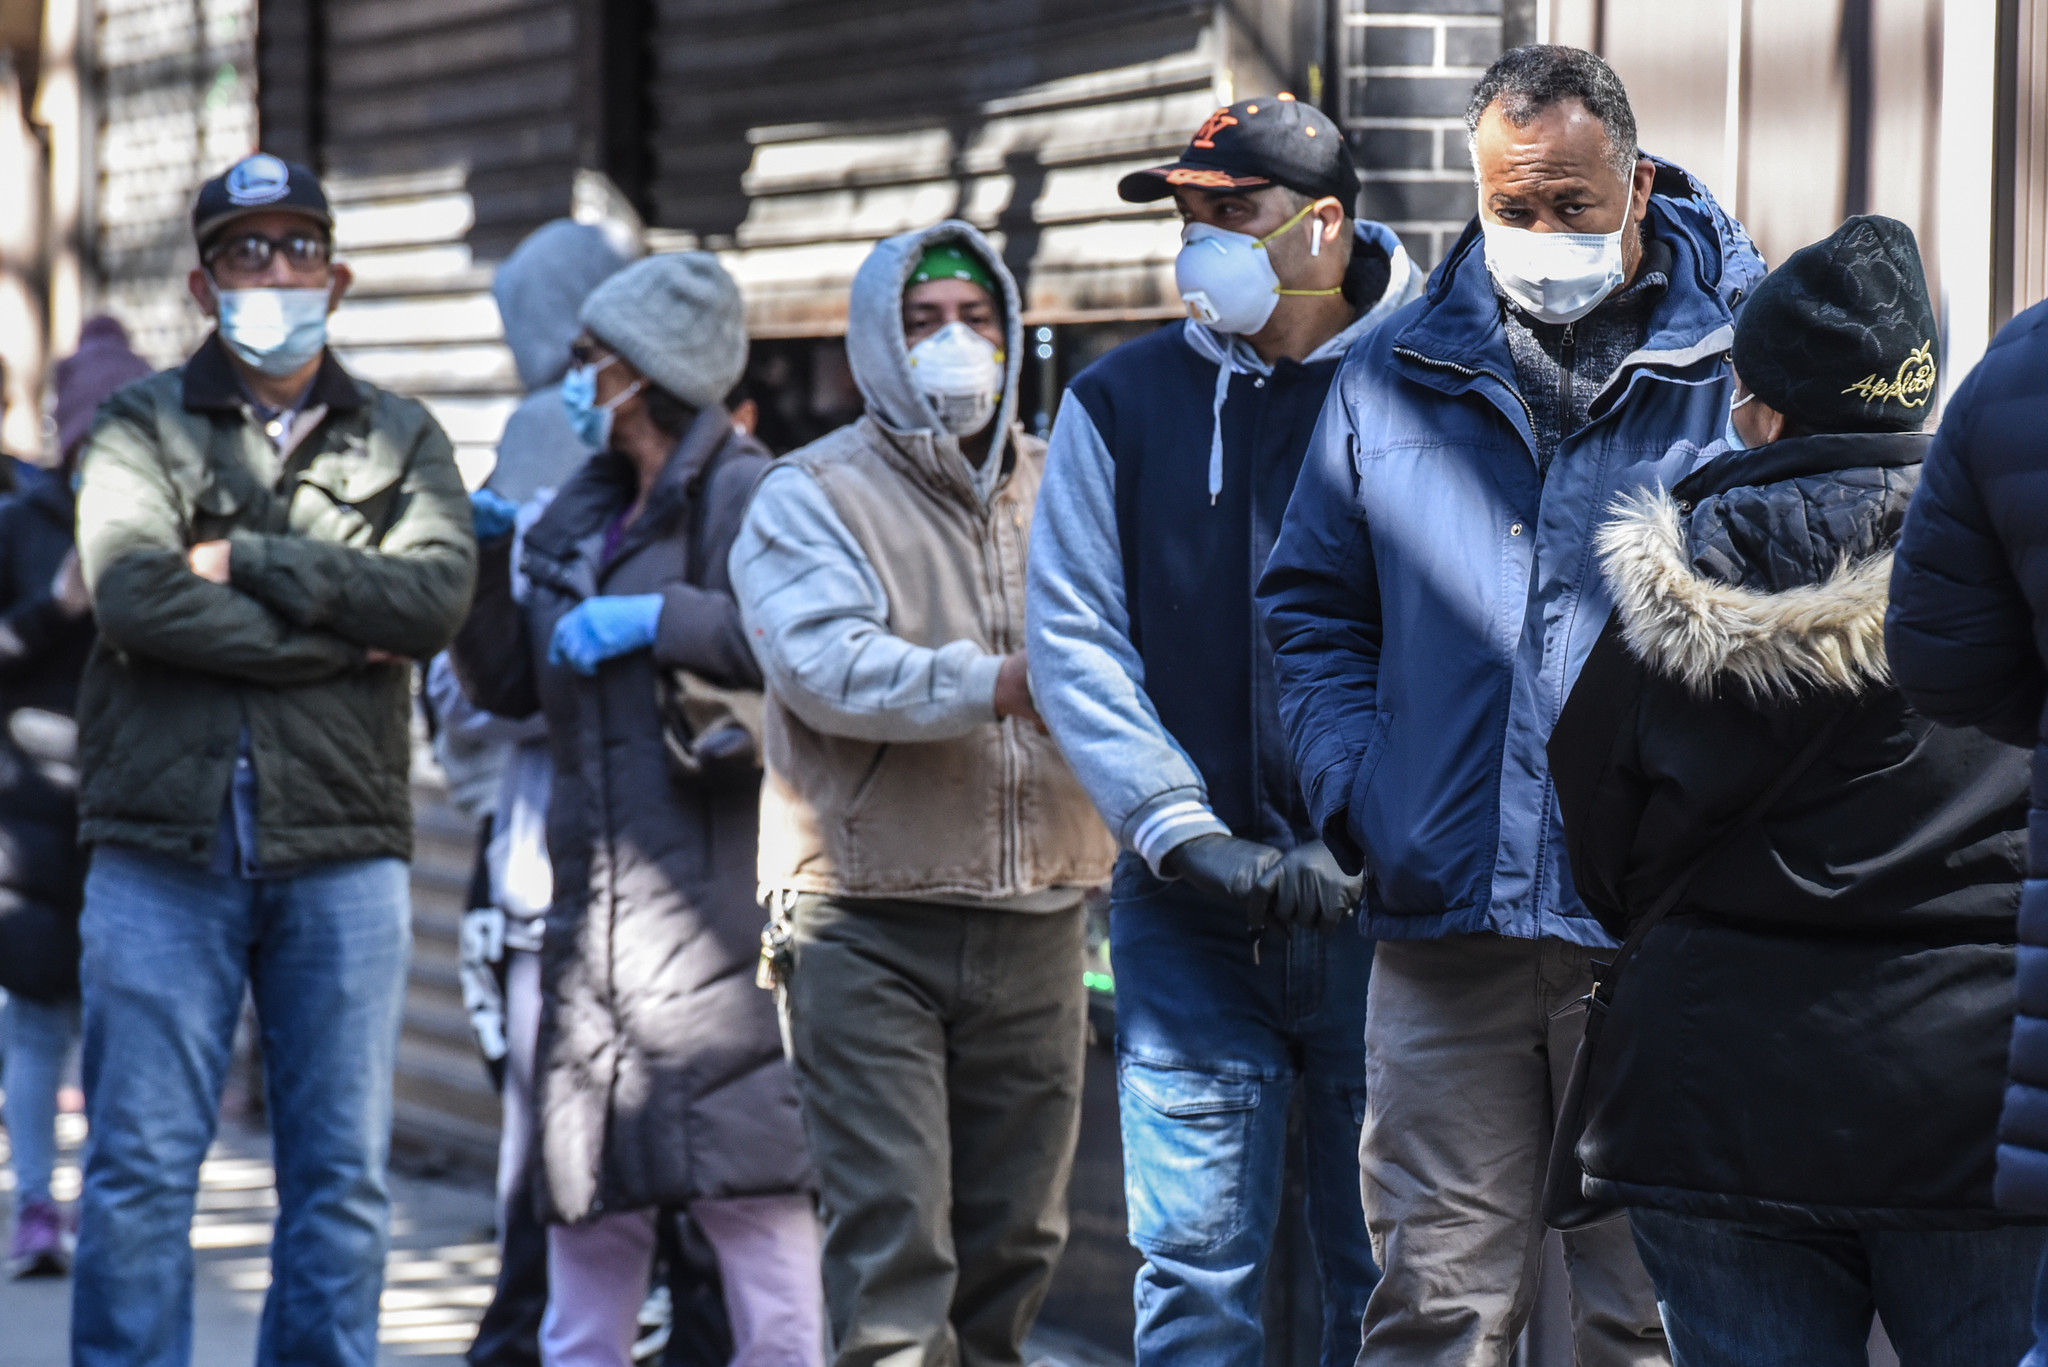 NYC residents told to cover mouth, nose with scarves, bandannas or clothing when in public to stop coronavirus spread